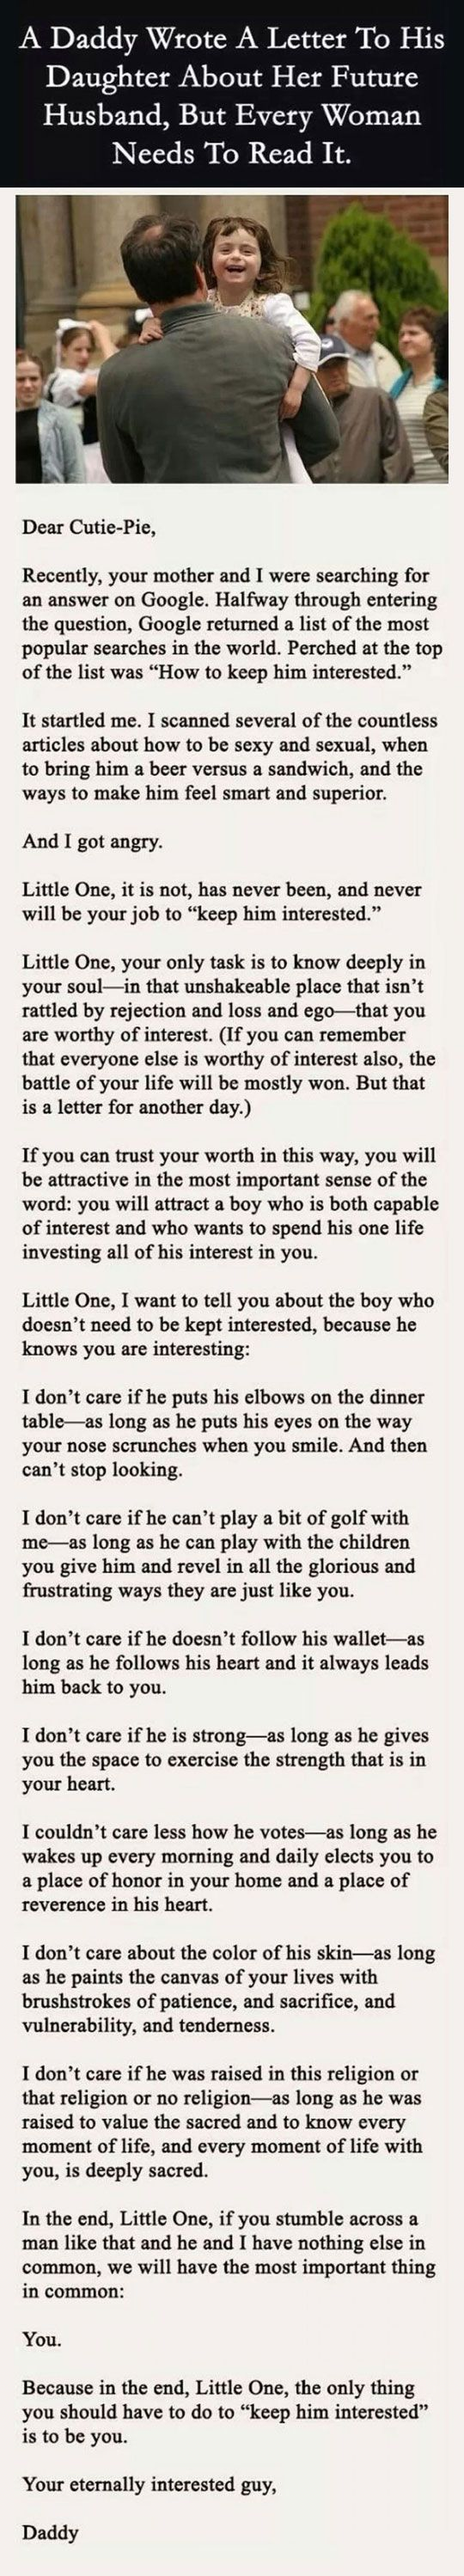 Almost made me cry. This is the love I want to find in my future spouse and how he loves our kids. I can't wait to meet him.